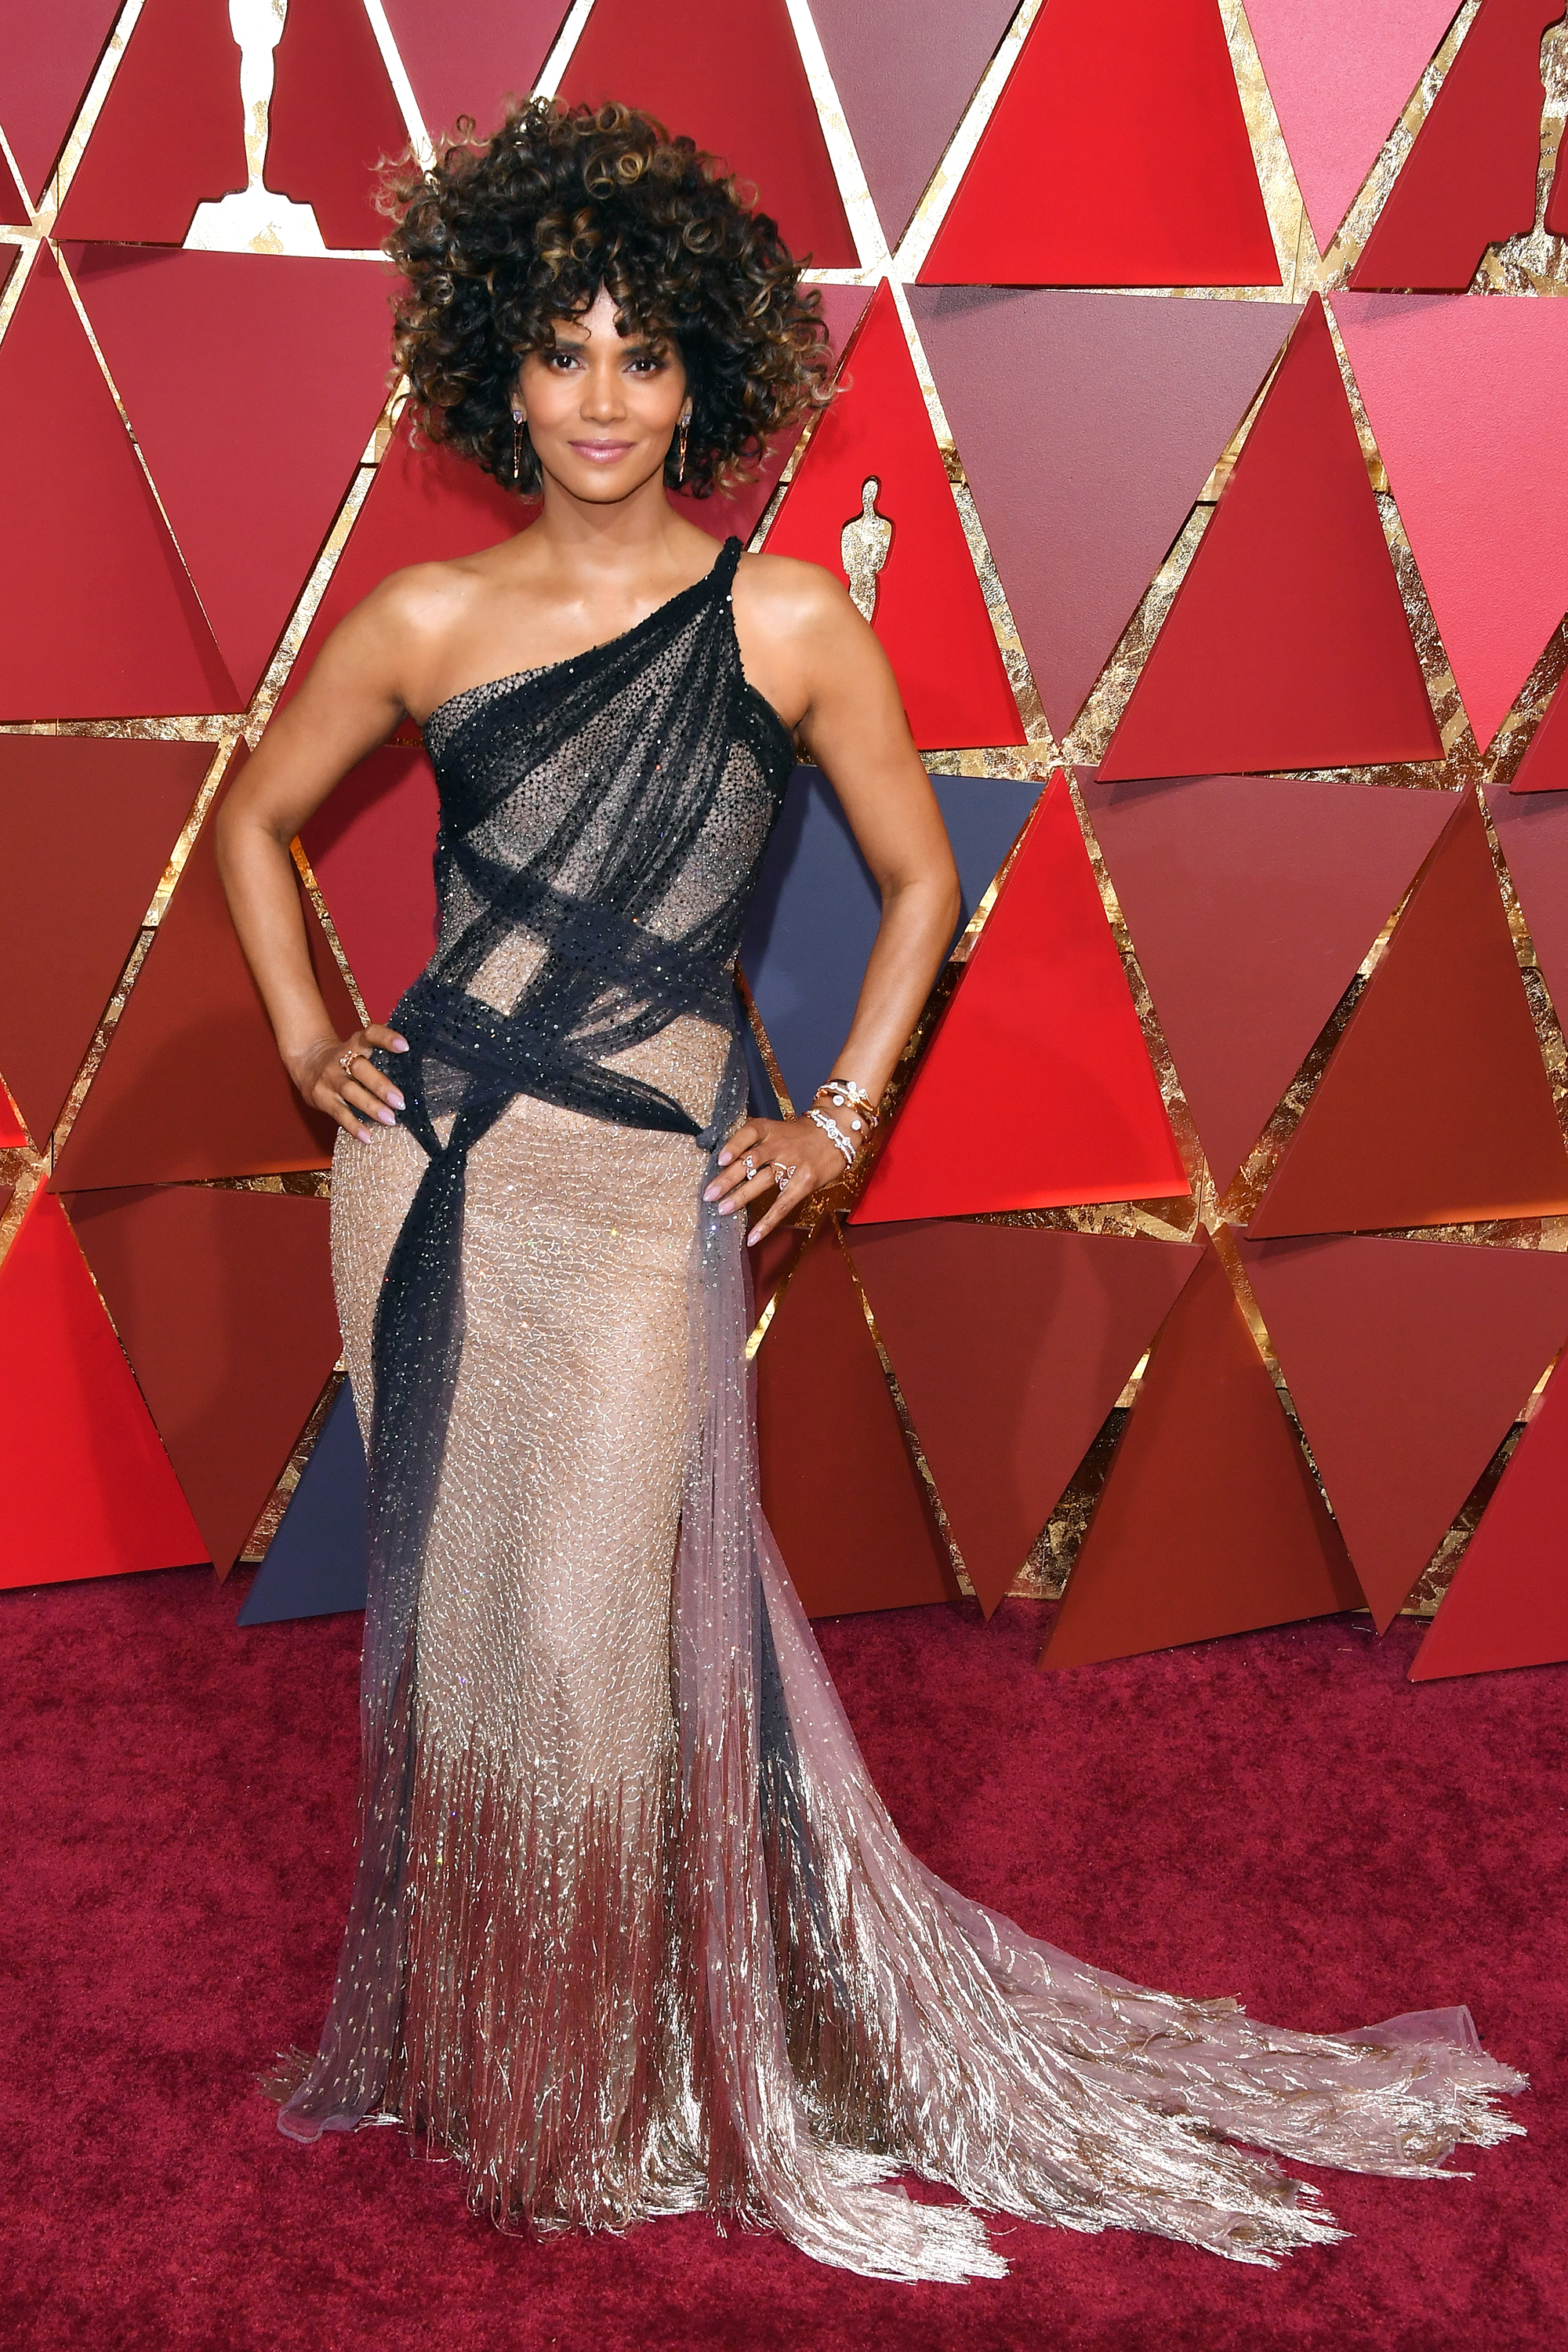 Halle Berry on the red carpet for the 89th Oscars, on Feb. 26, 2017 in Hollywood, Calif.